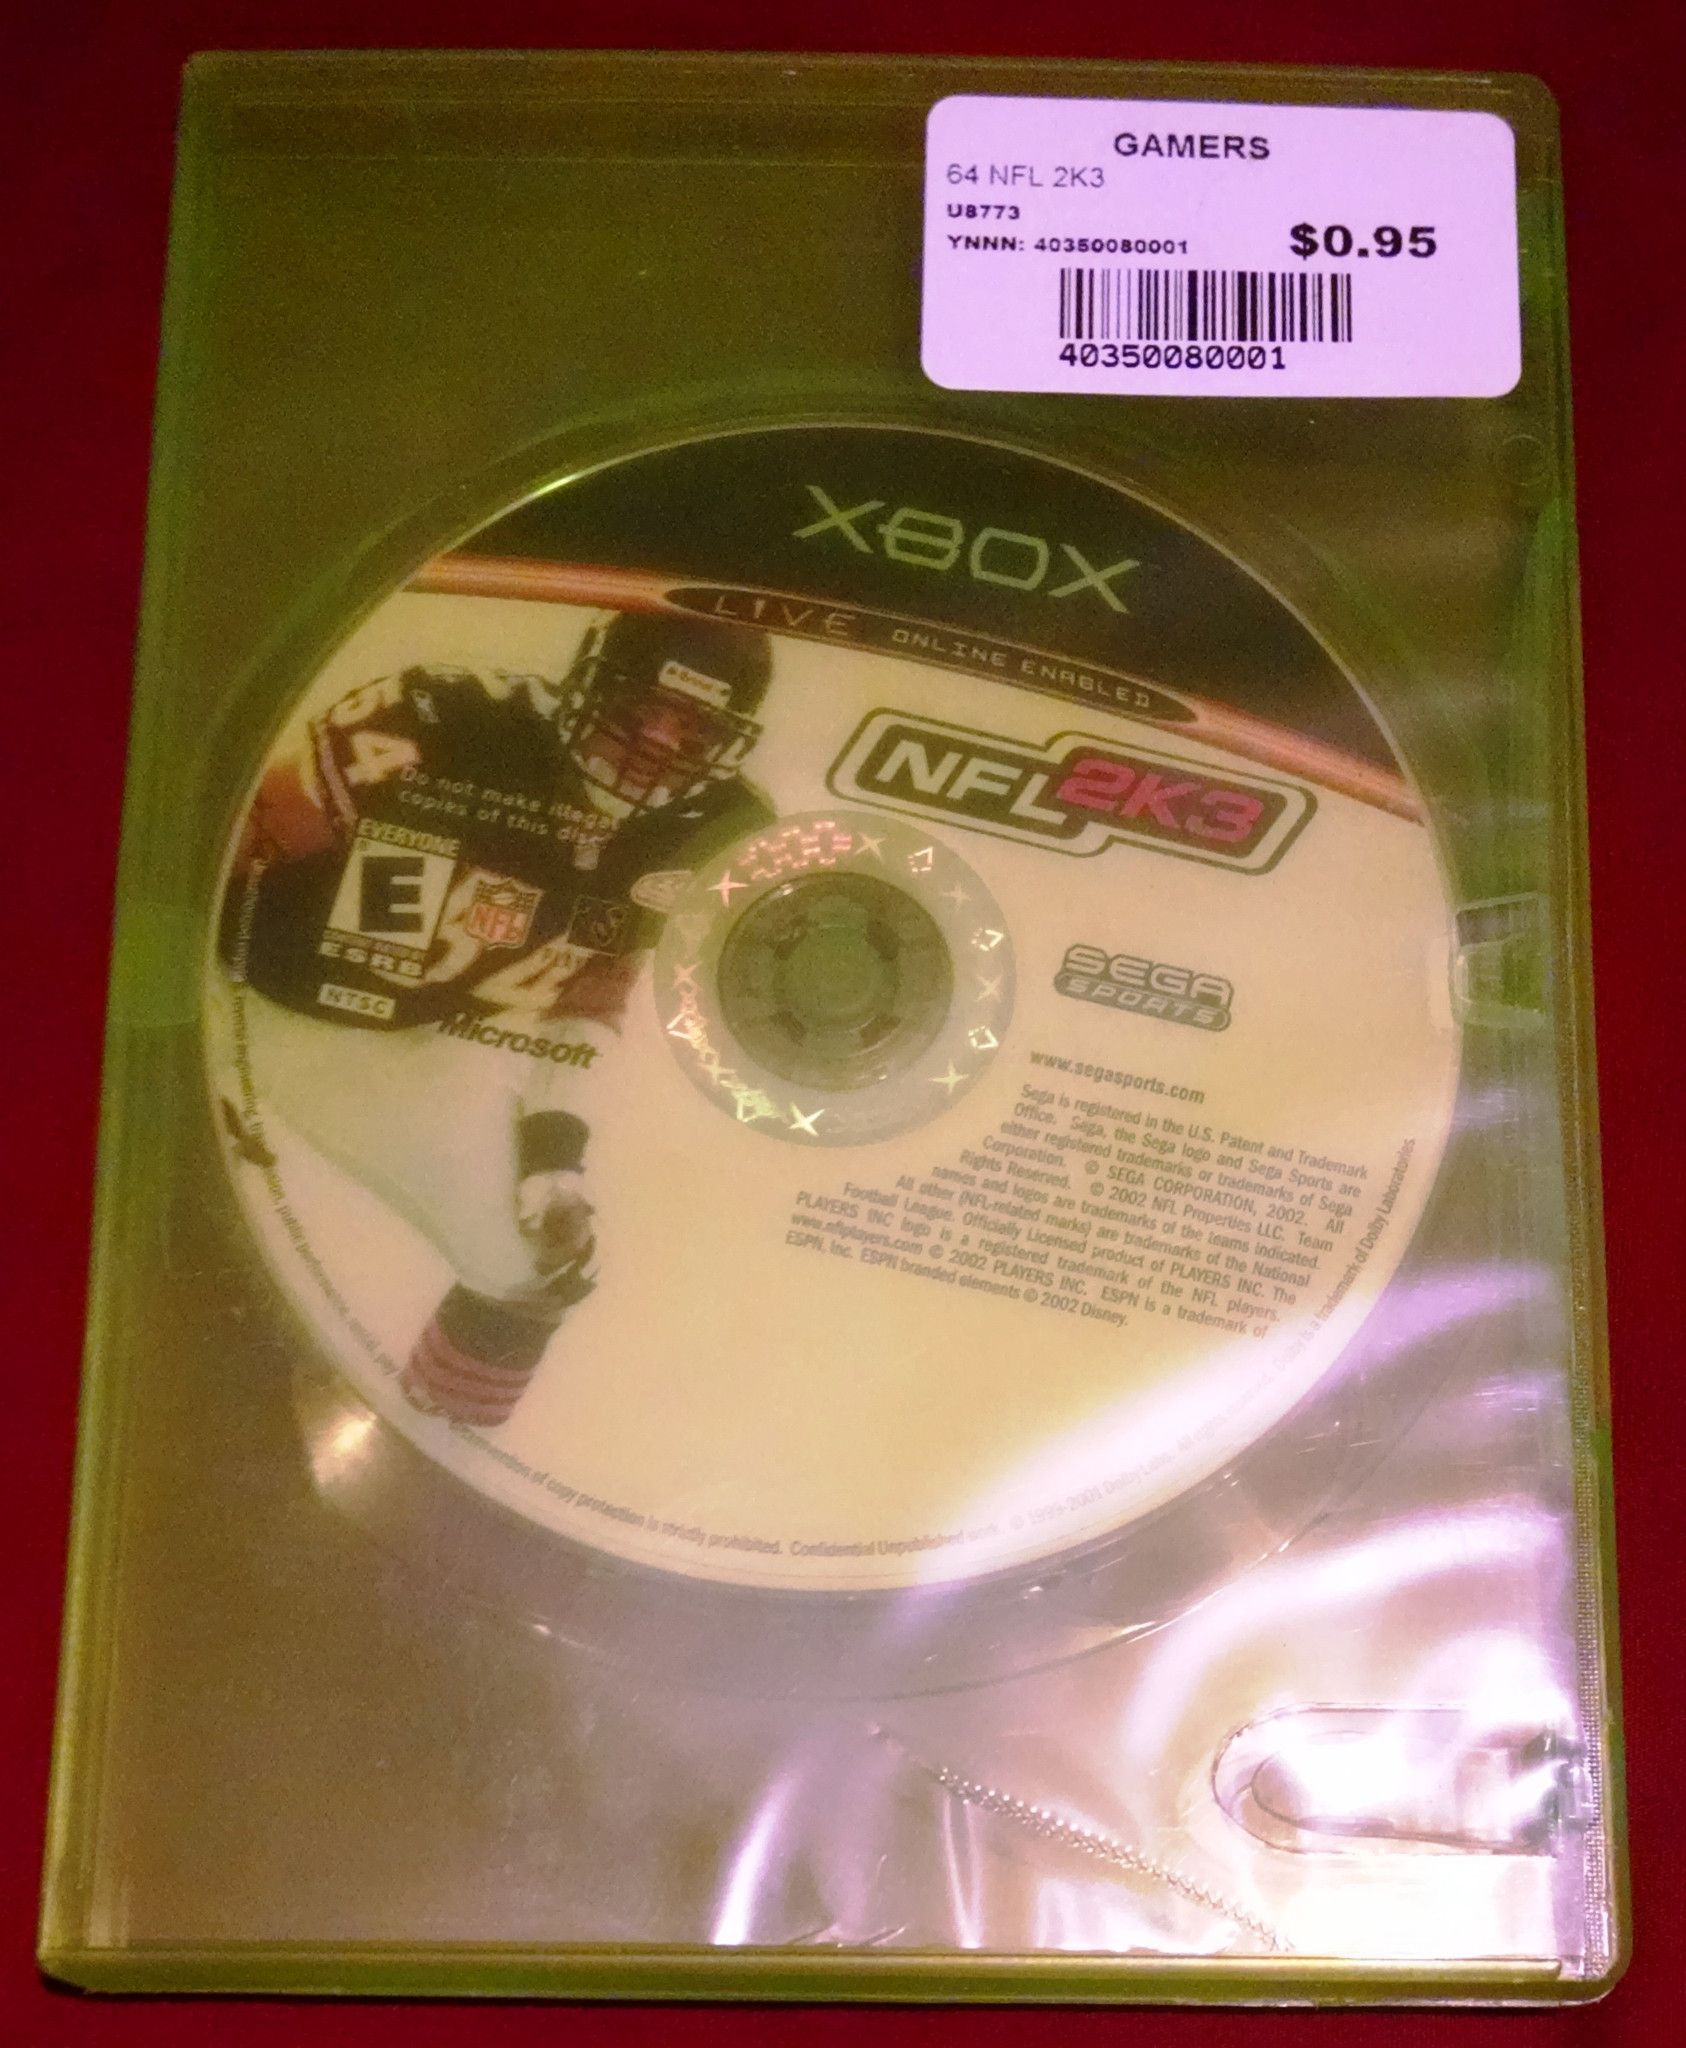 nfl 2k3 for xbox 2002 football video game upc 0010086640229